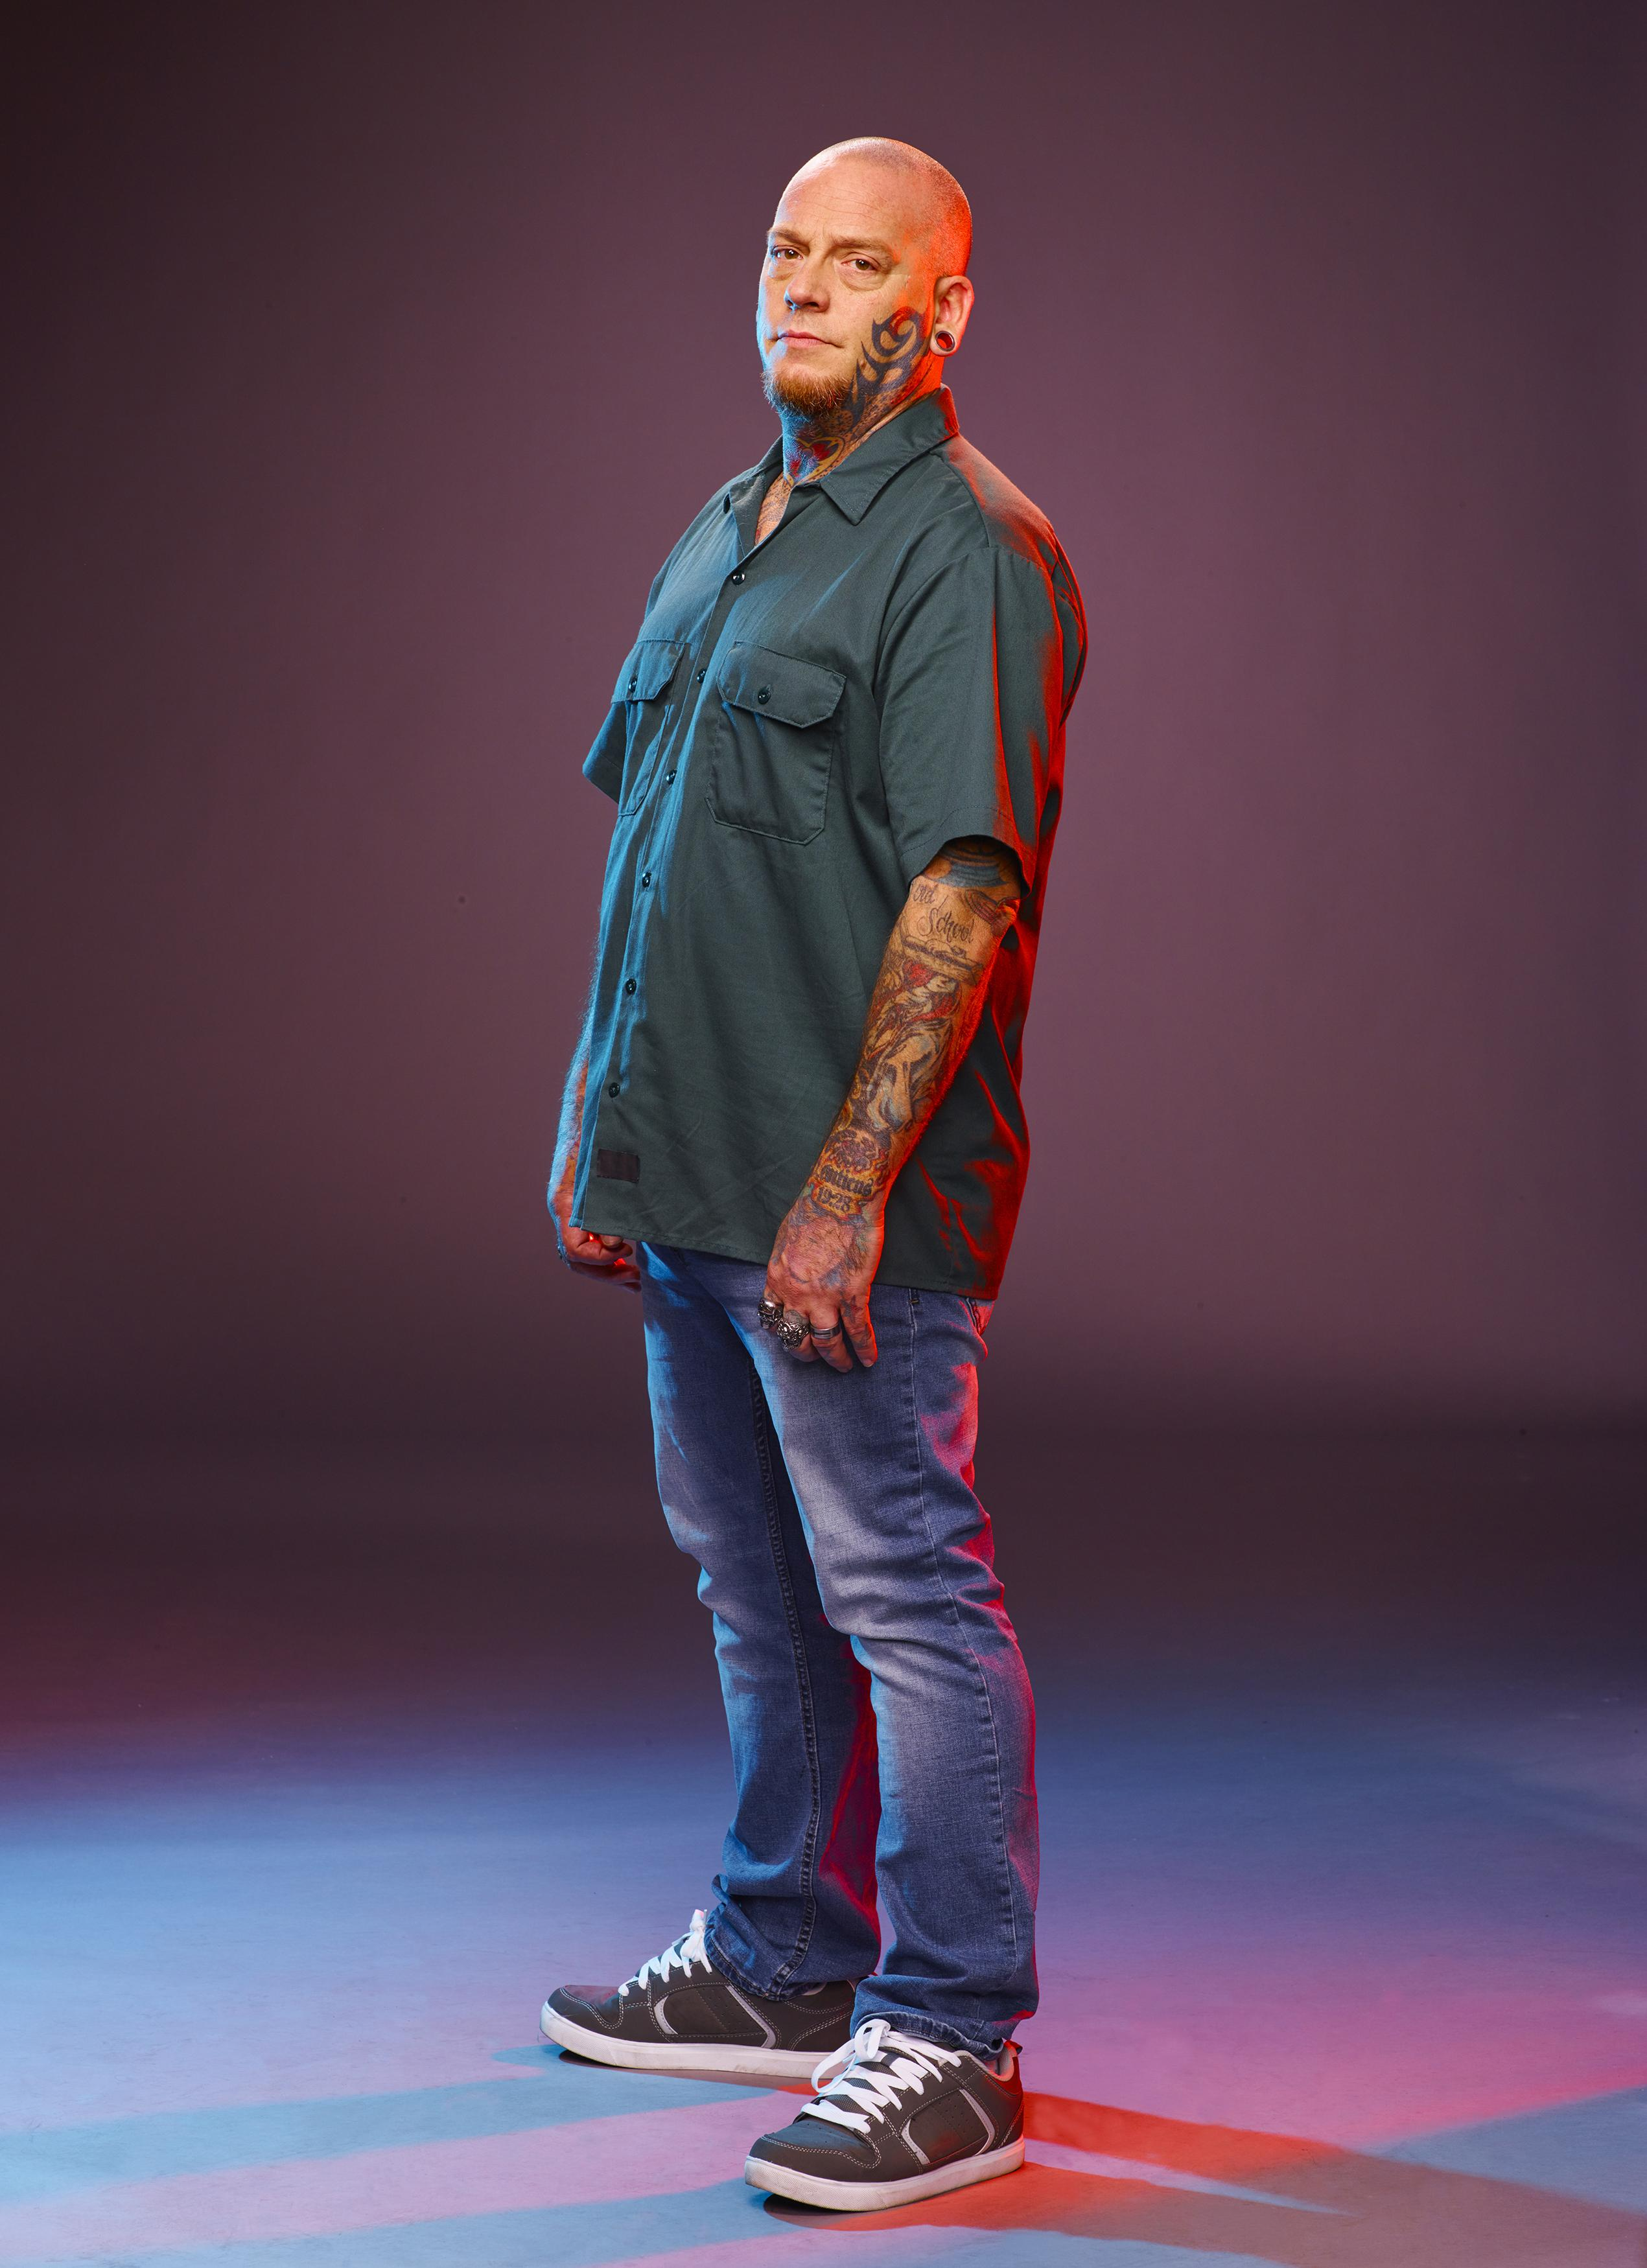 Christian - Ink Master